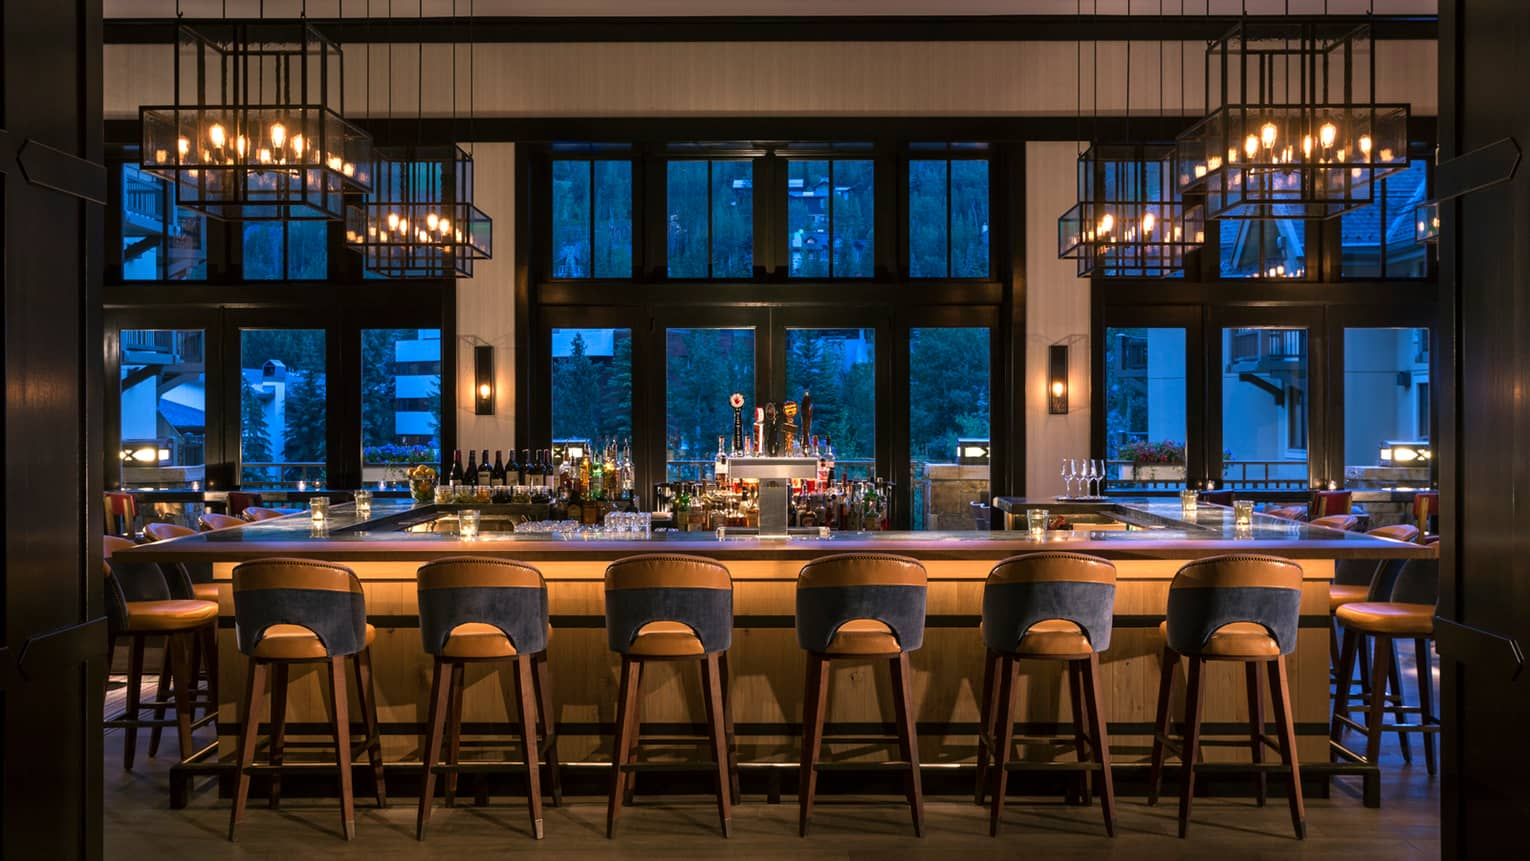 Dimly-lit bar at dusk lined with retro-style wood stools, lantern chandeliers above, large windows